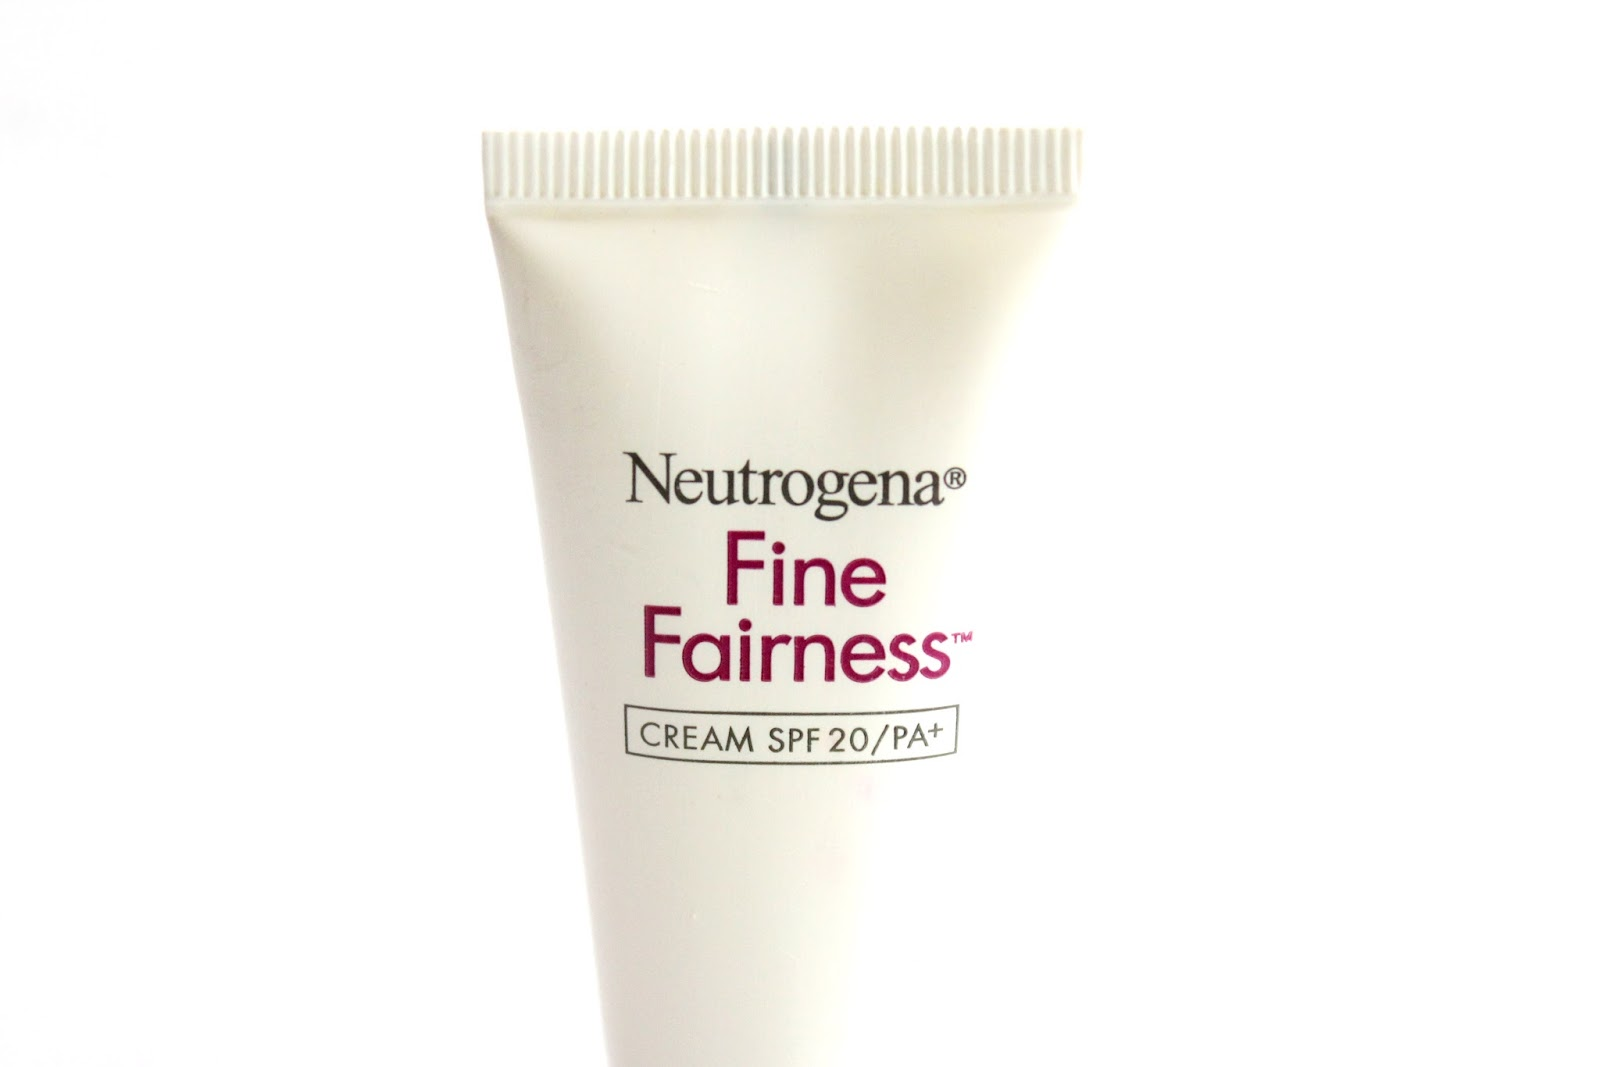 Neutrogena Fine Fairness Cream review, photos, price, buy online india